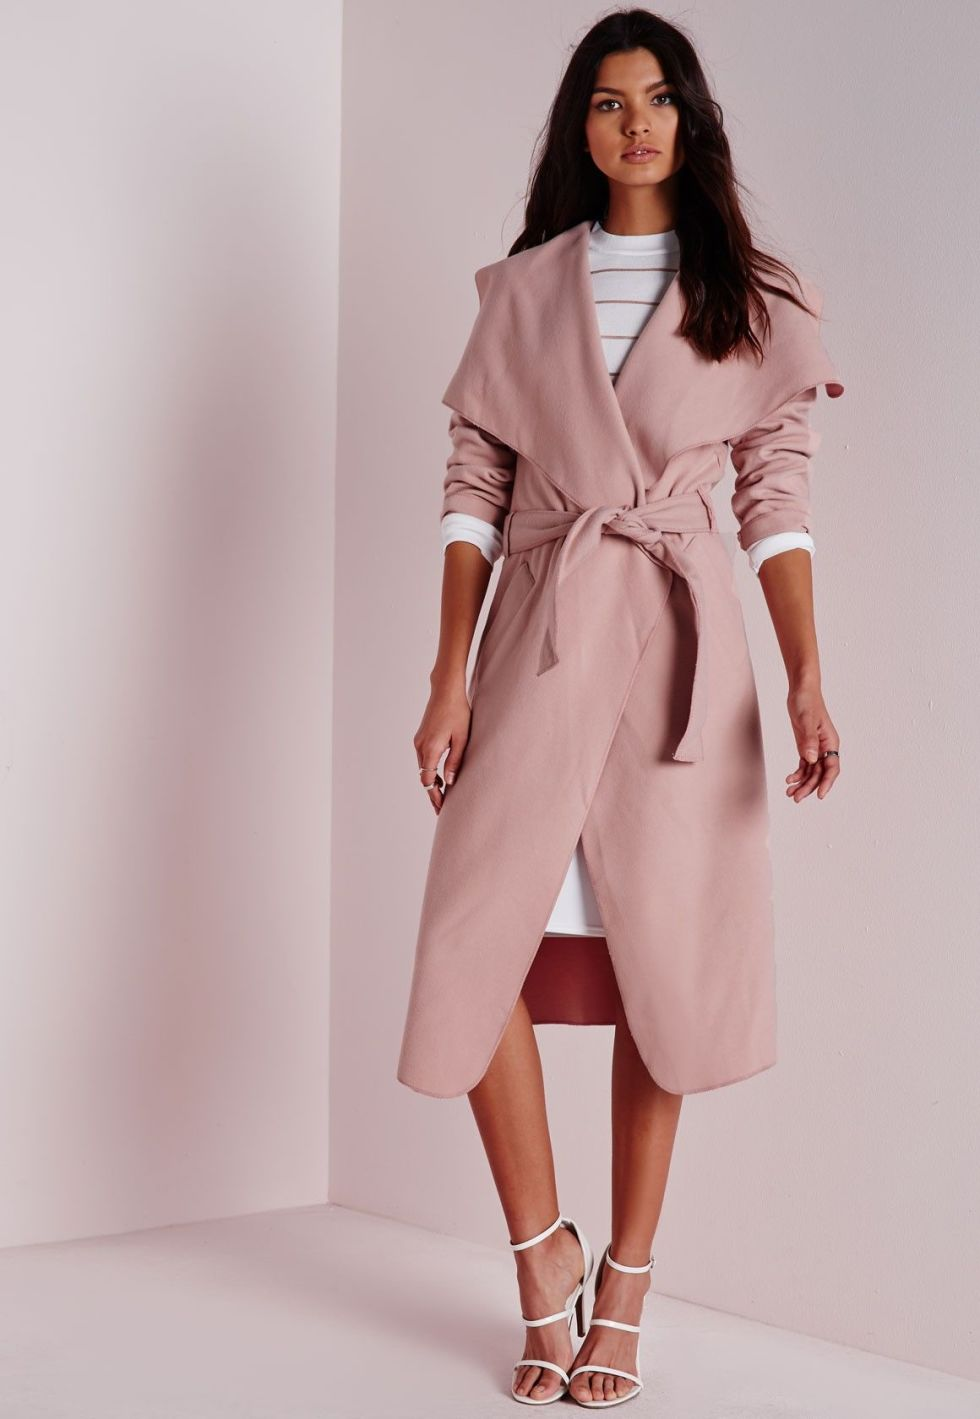 Trench Coat For Juniors - Tradingbasis